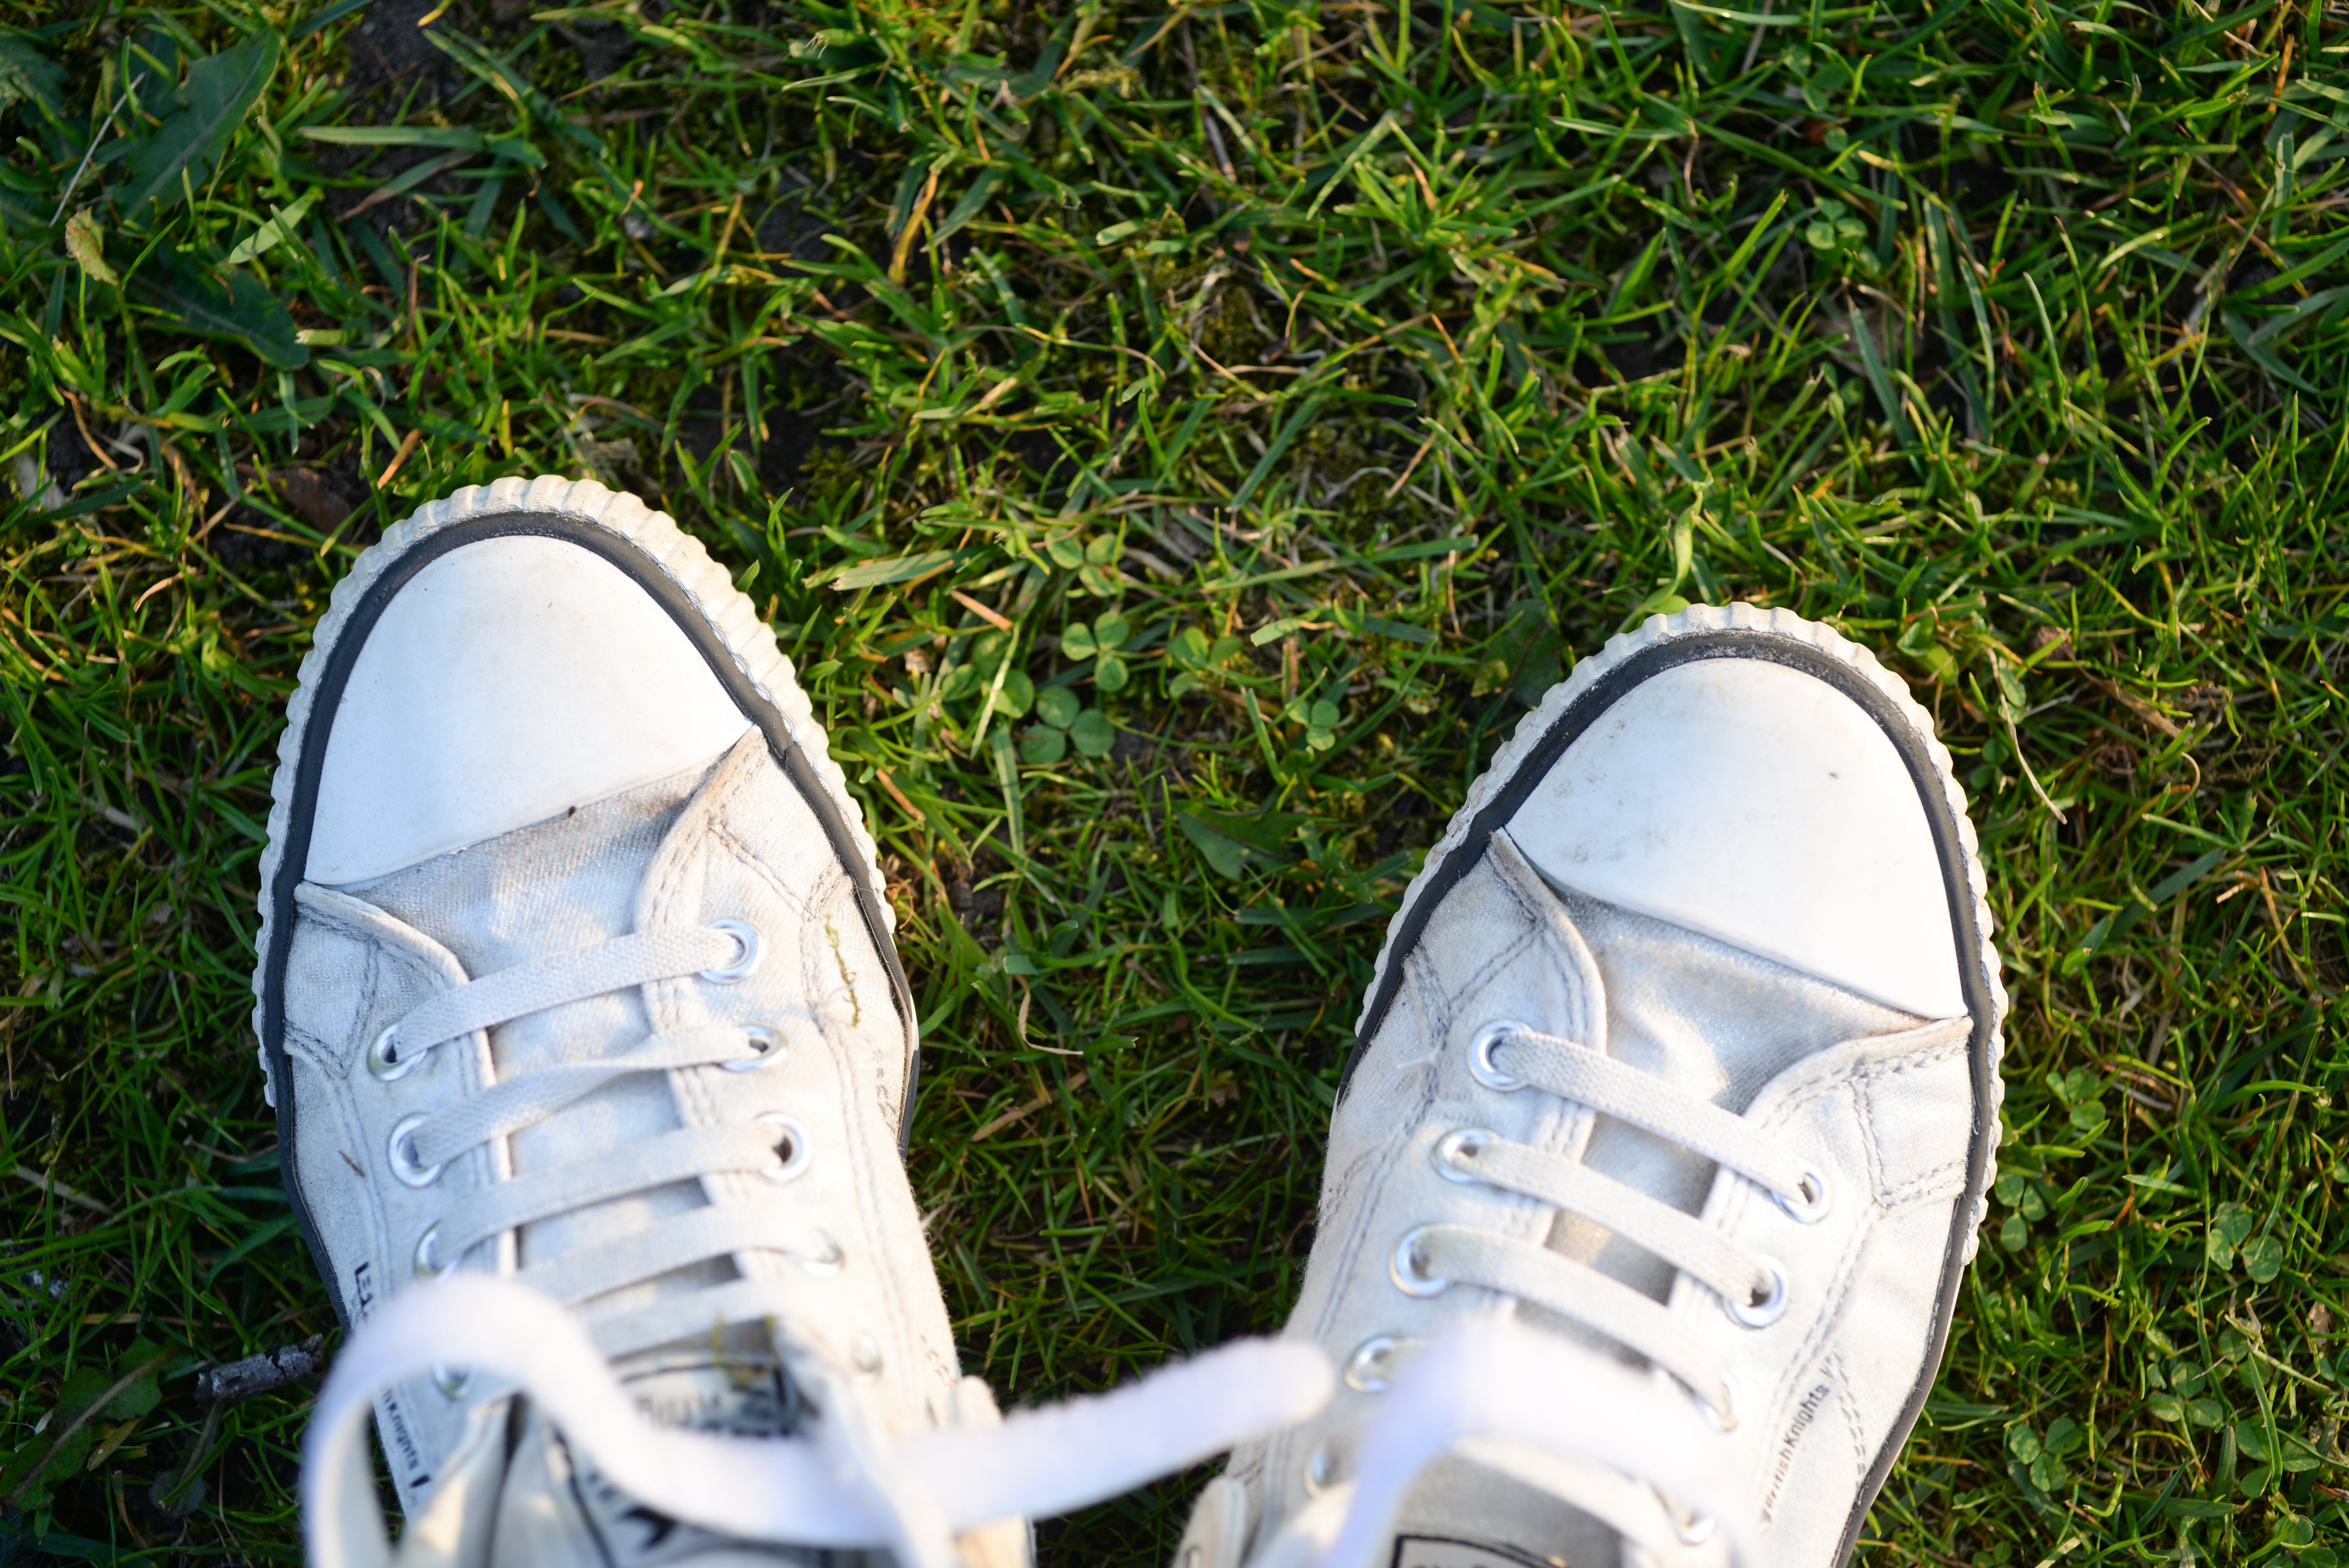 Pair of White Lace-up Sneakers on Top Green Grass